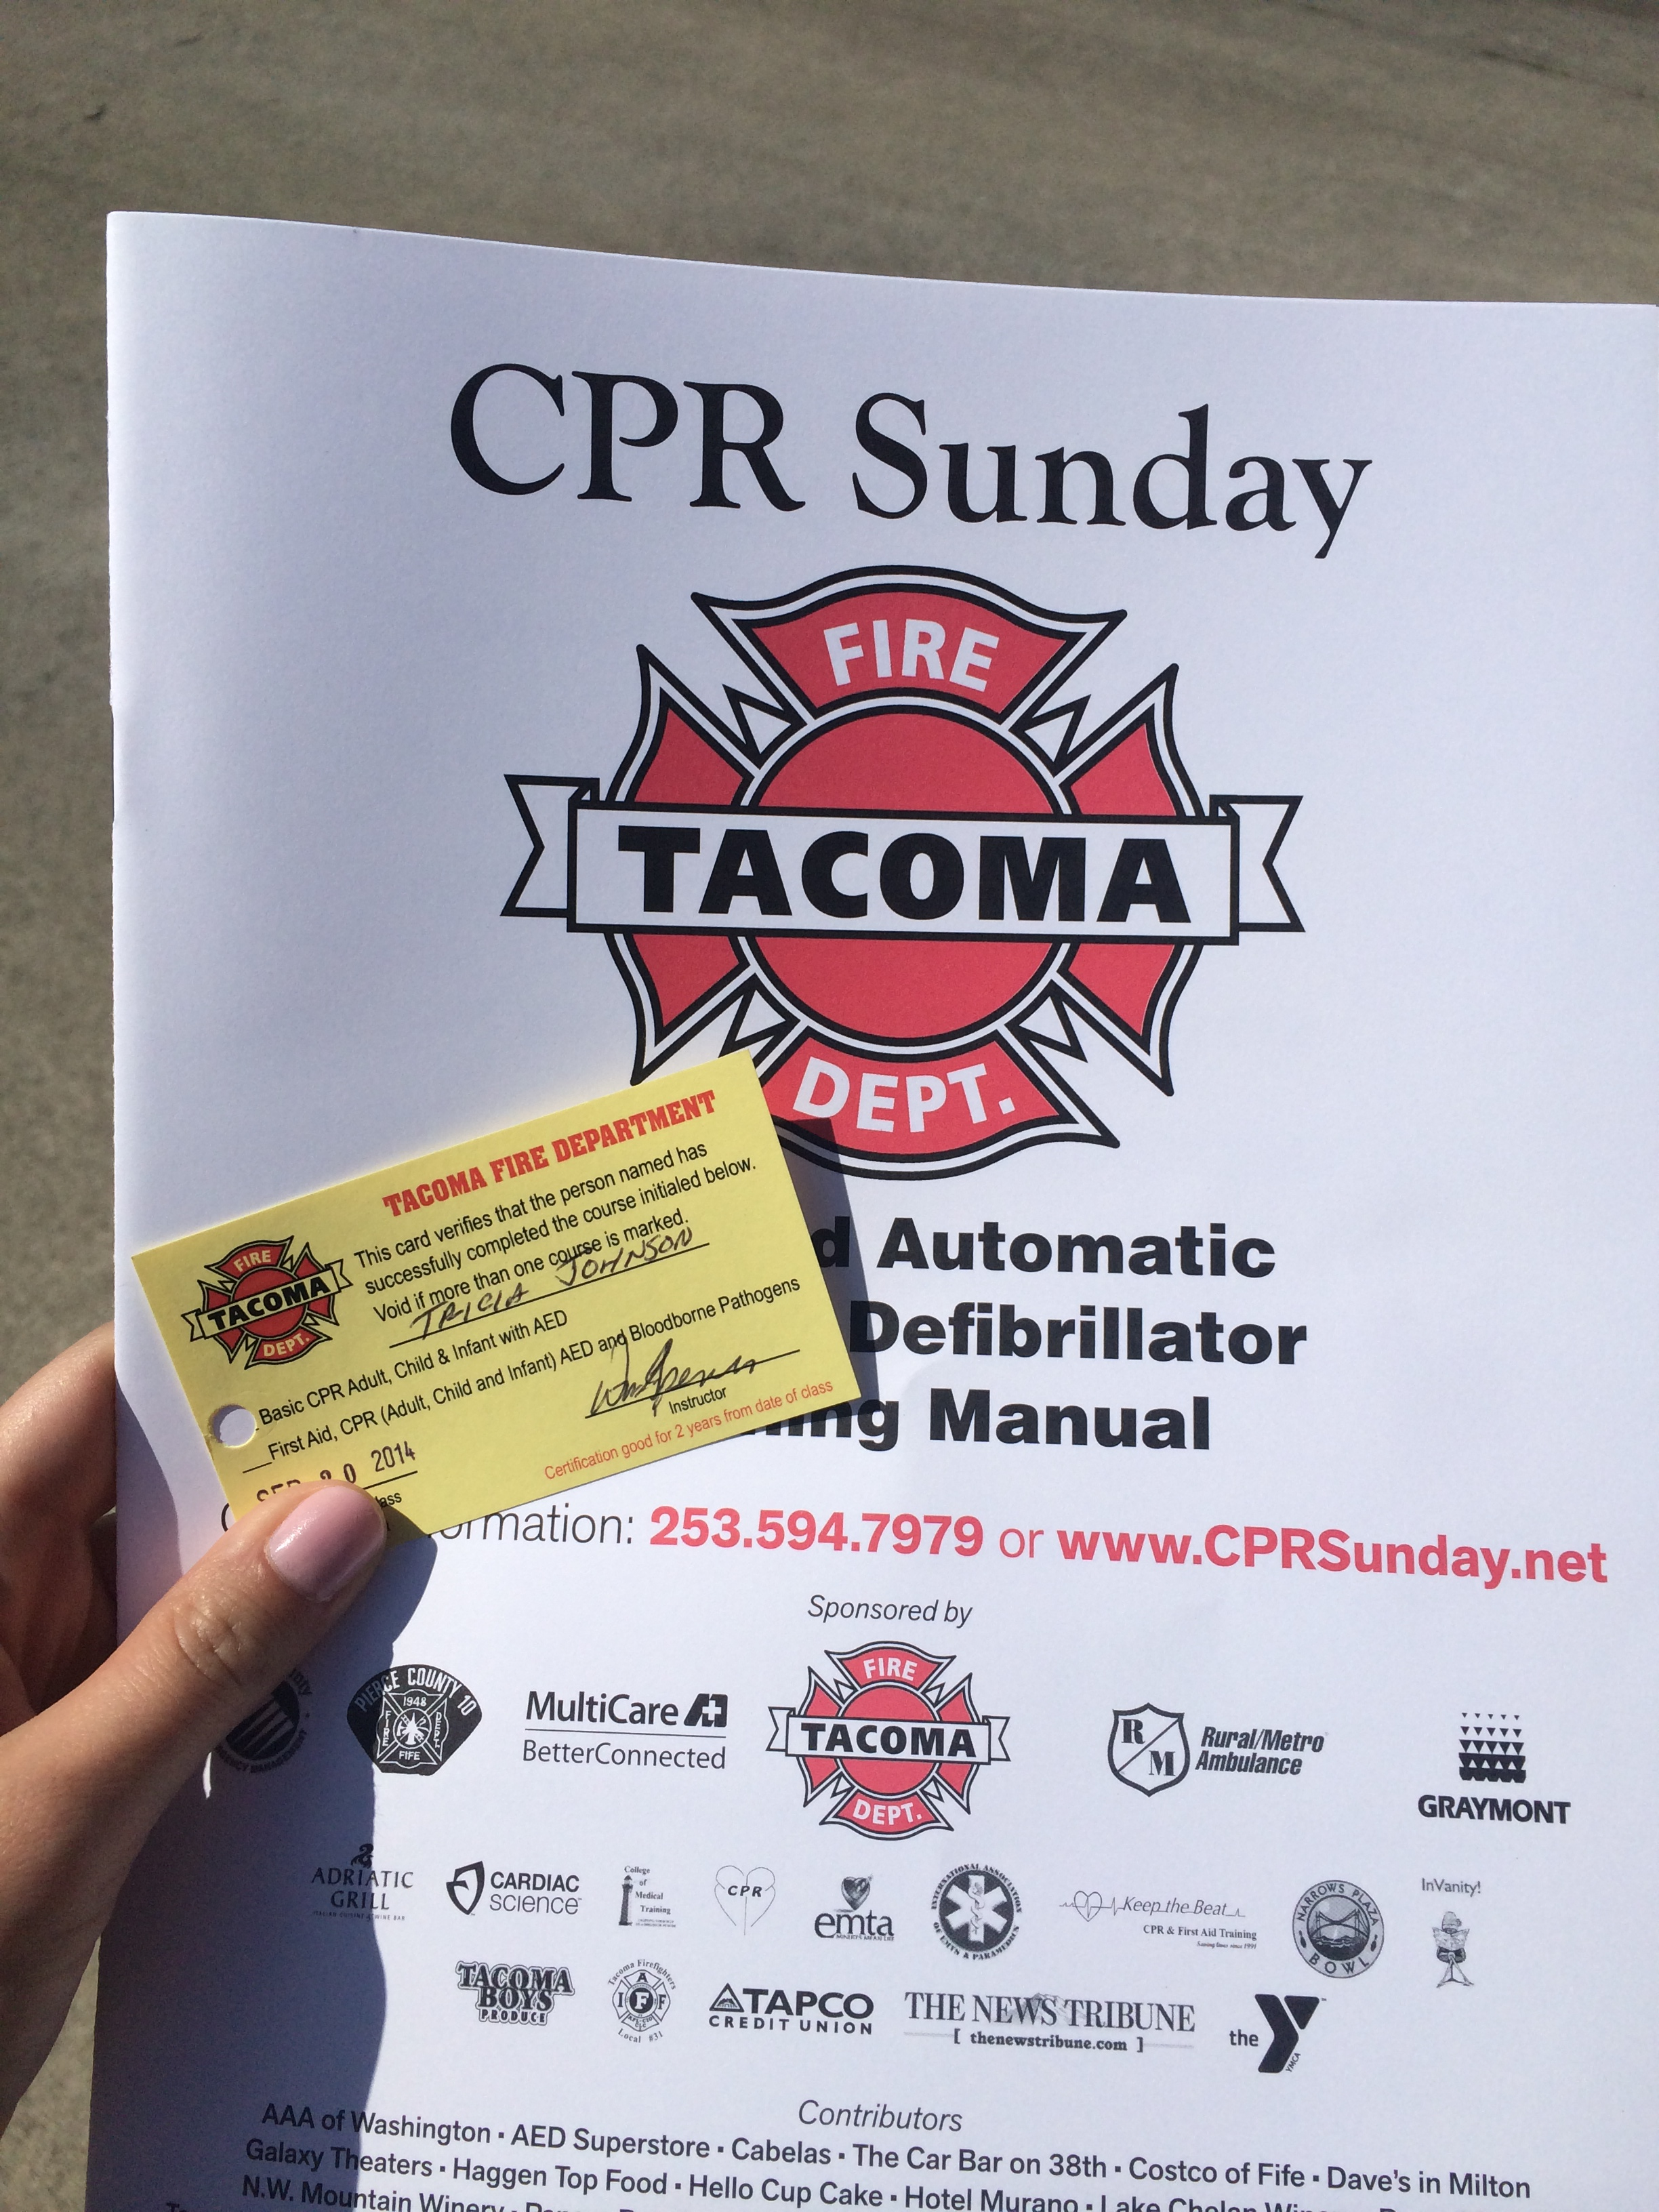 Cpr saturday ramblings a couple of dashes then we got our shiny new cpr certification cards yay im now certified to help you continue to breathe and not choke in the case of an emergency until xflitez Choice Image